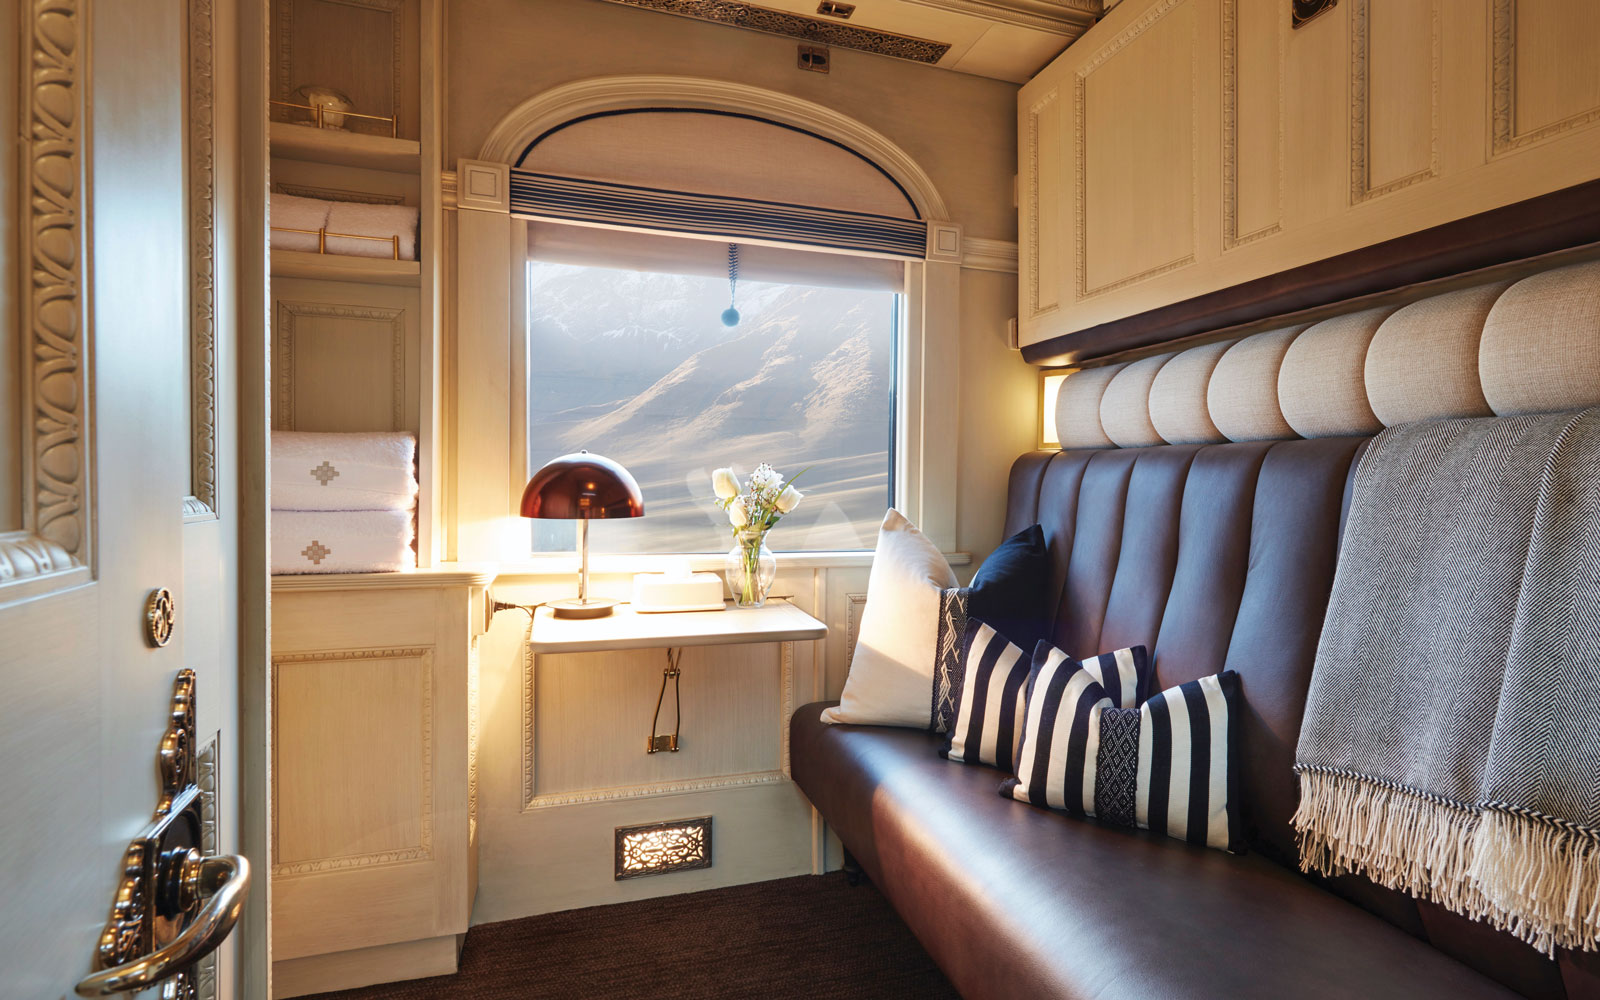 Travel Through the Andes on South America's First Luxury Sleeper Train